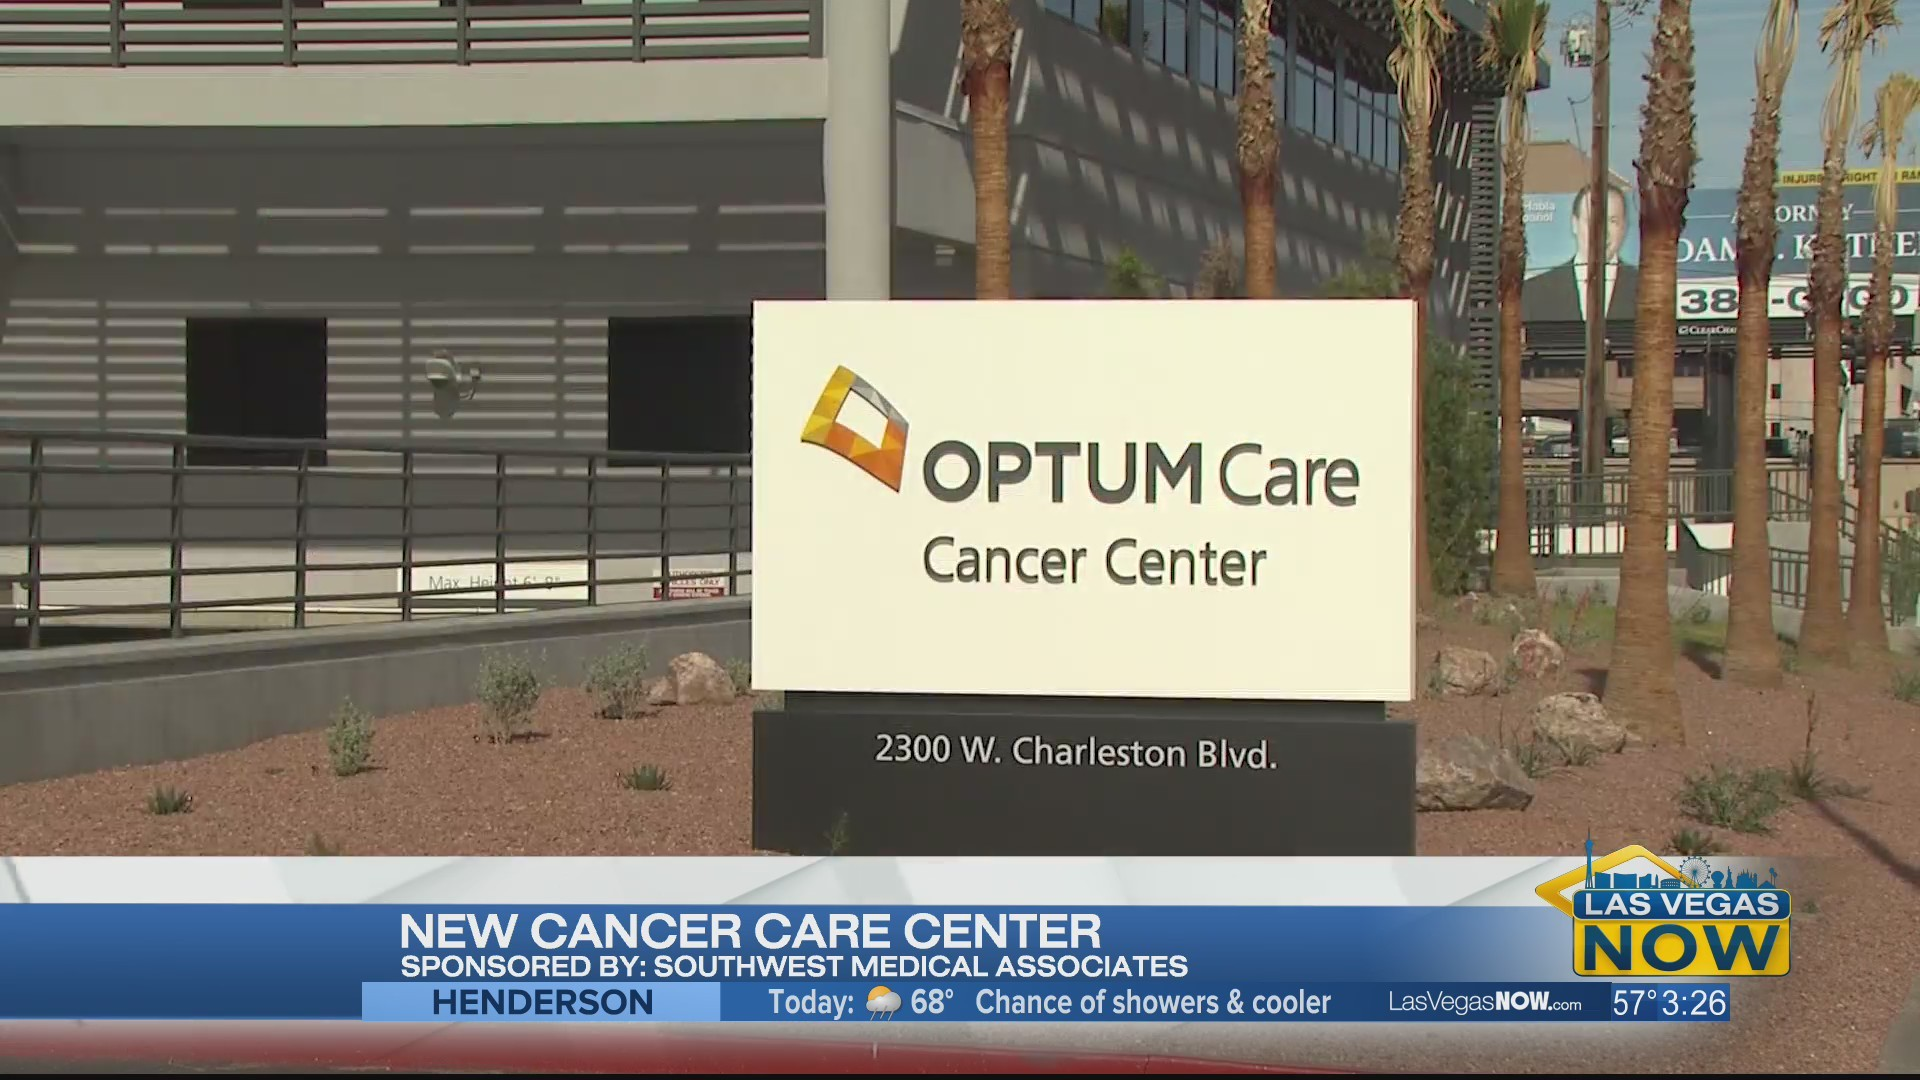 The new Optum Care Cancer Center is state of the art